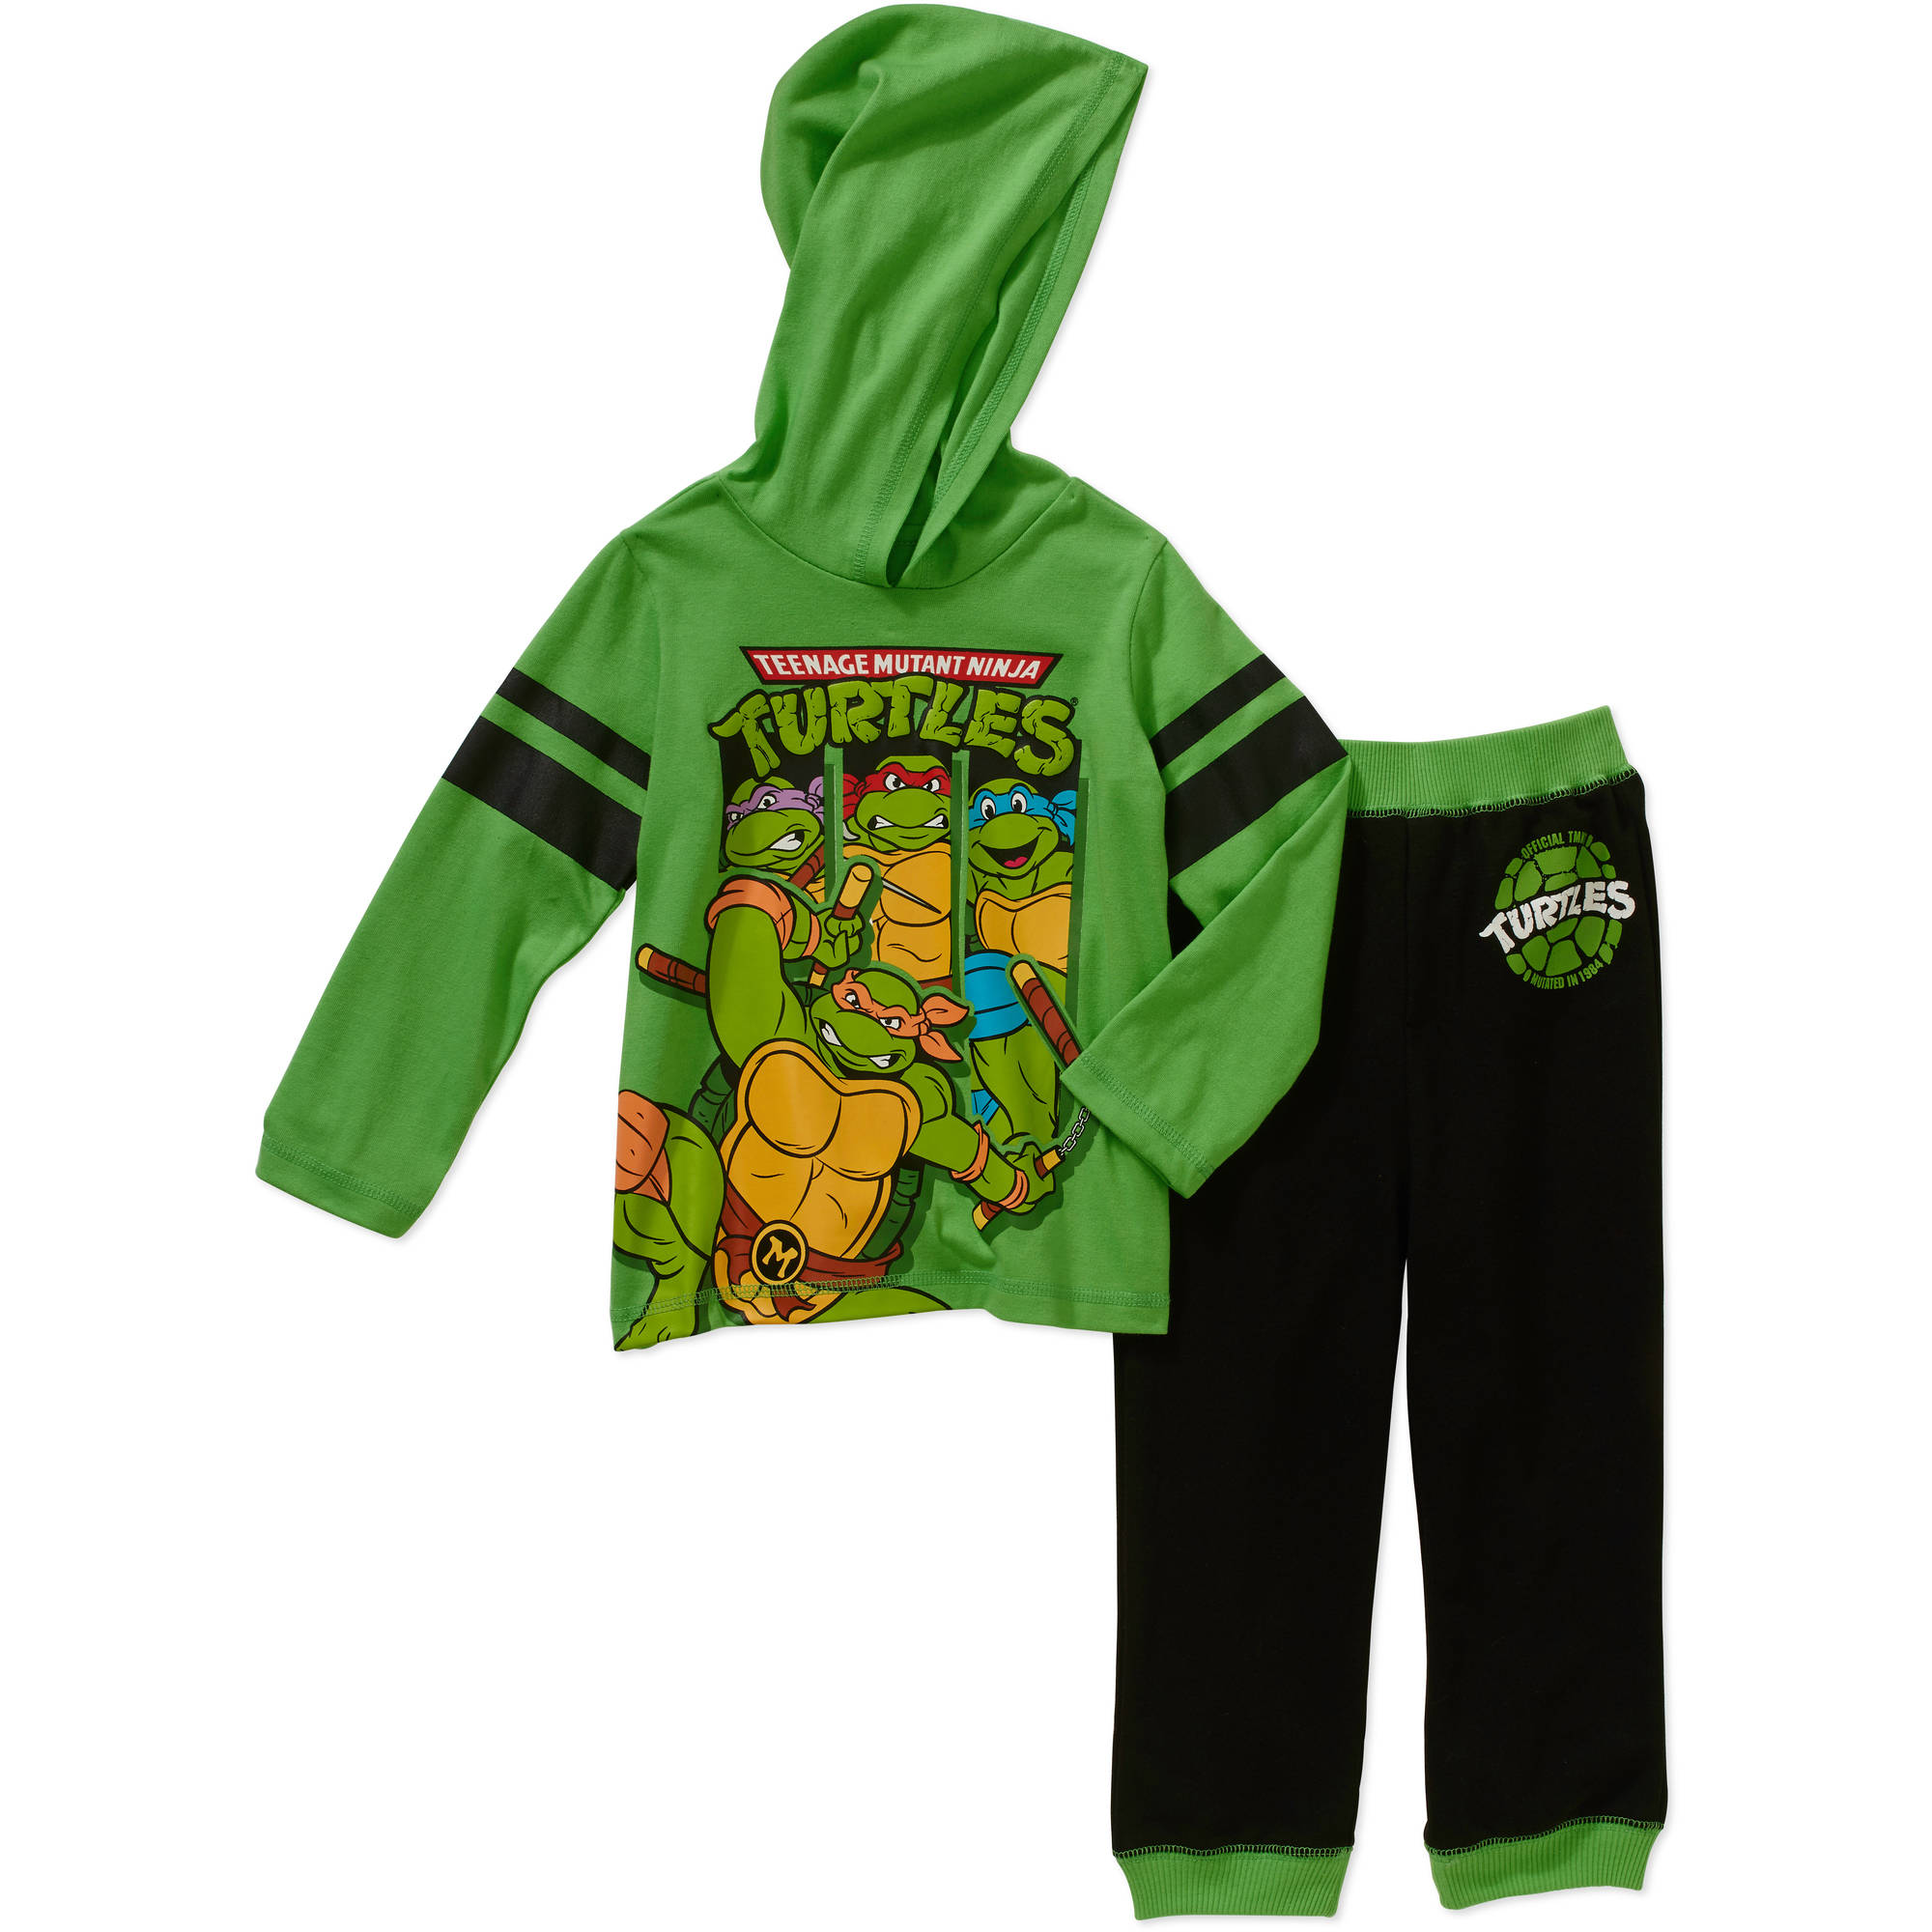 Teenage Mutant Ninja Turtles Toddler Boy Hangdown Tee and French Terry Jogger Pants Outfit Set